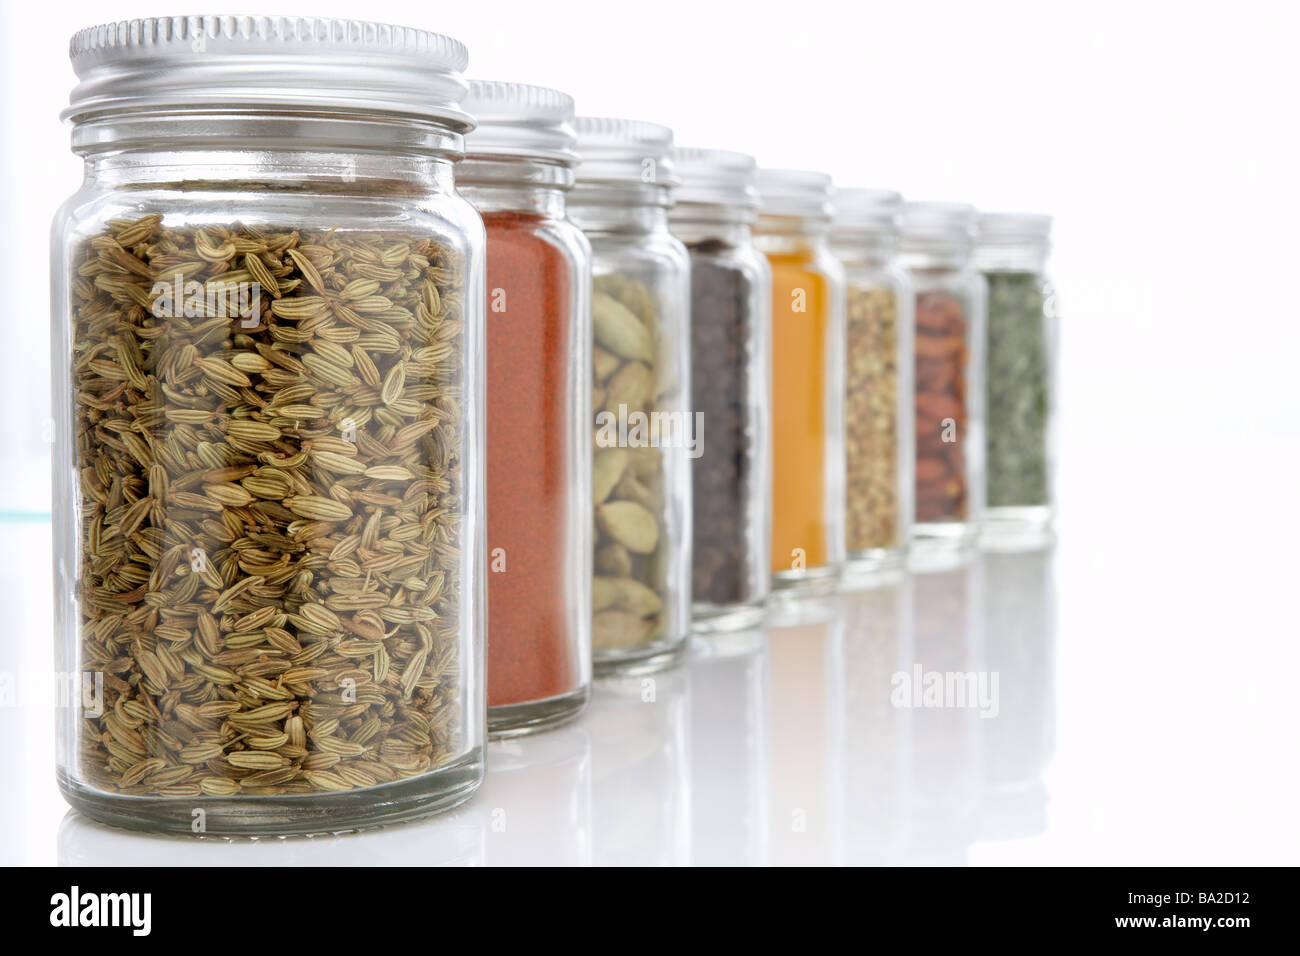 Jars Of Herbs And Spices - Stock Image